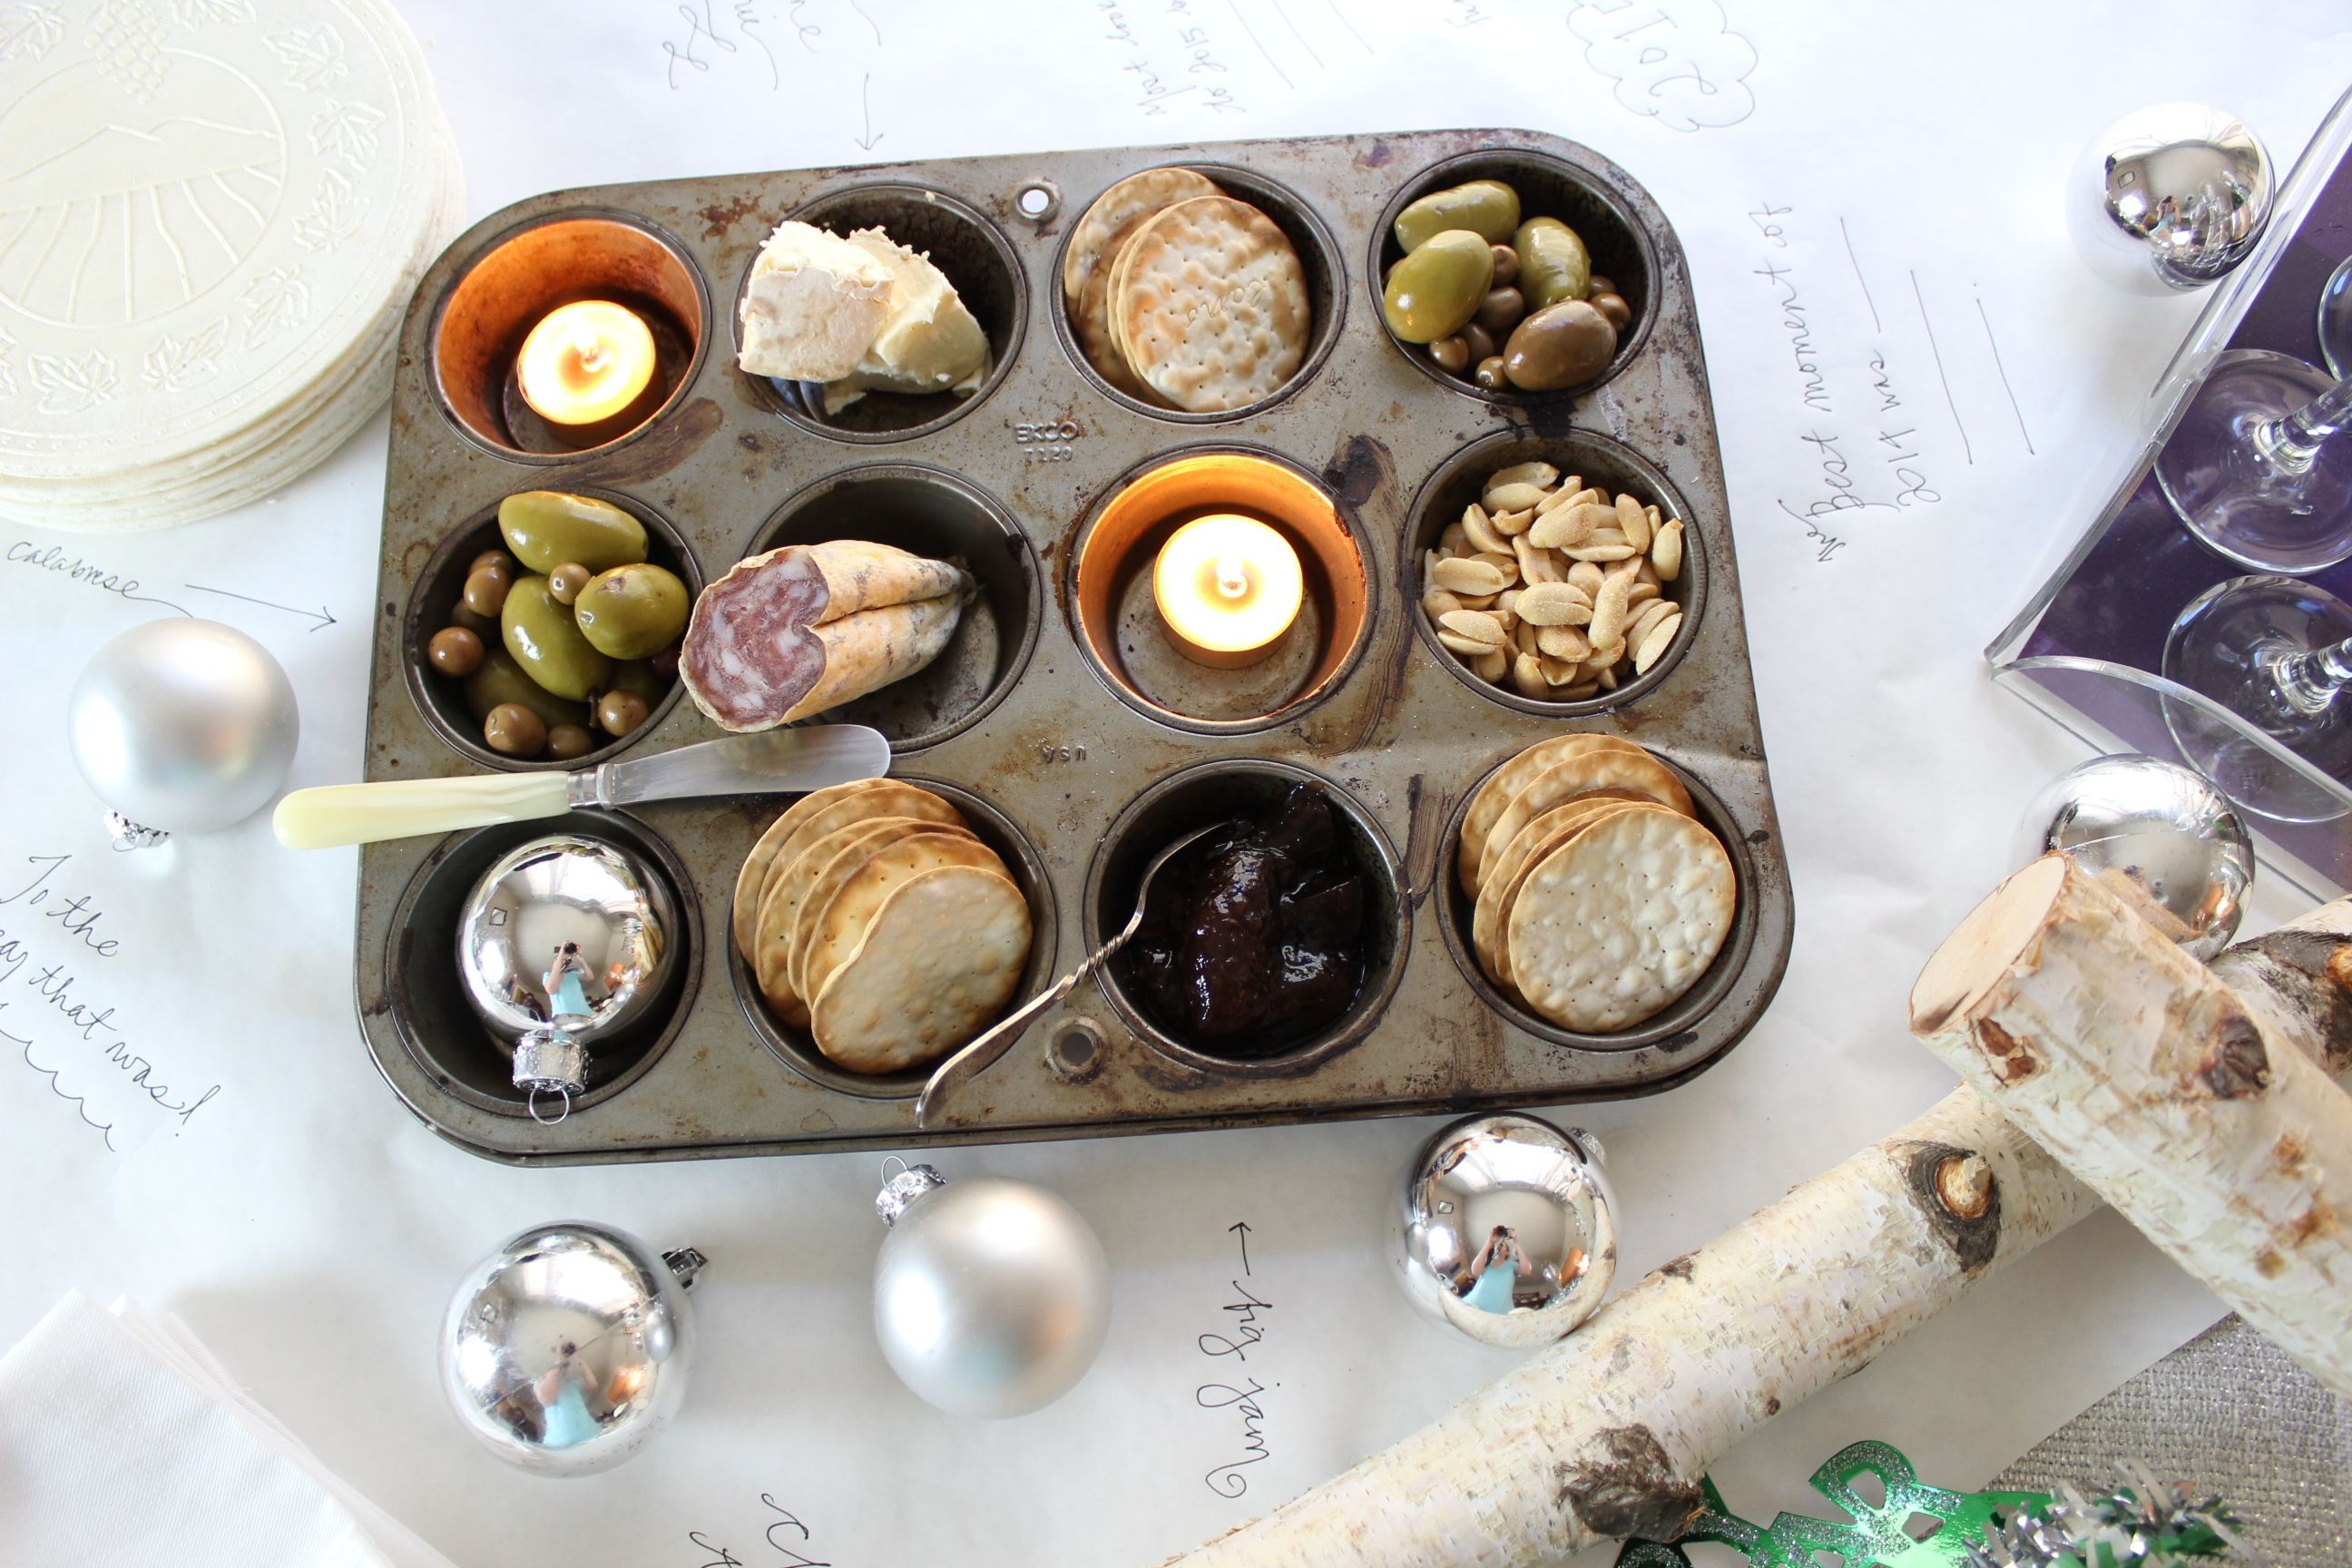 New Years Eve Champagne Party Ideas  Use A Muffin